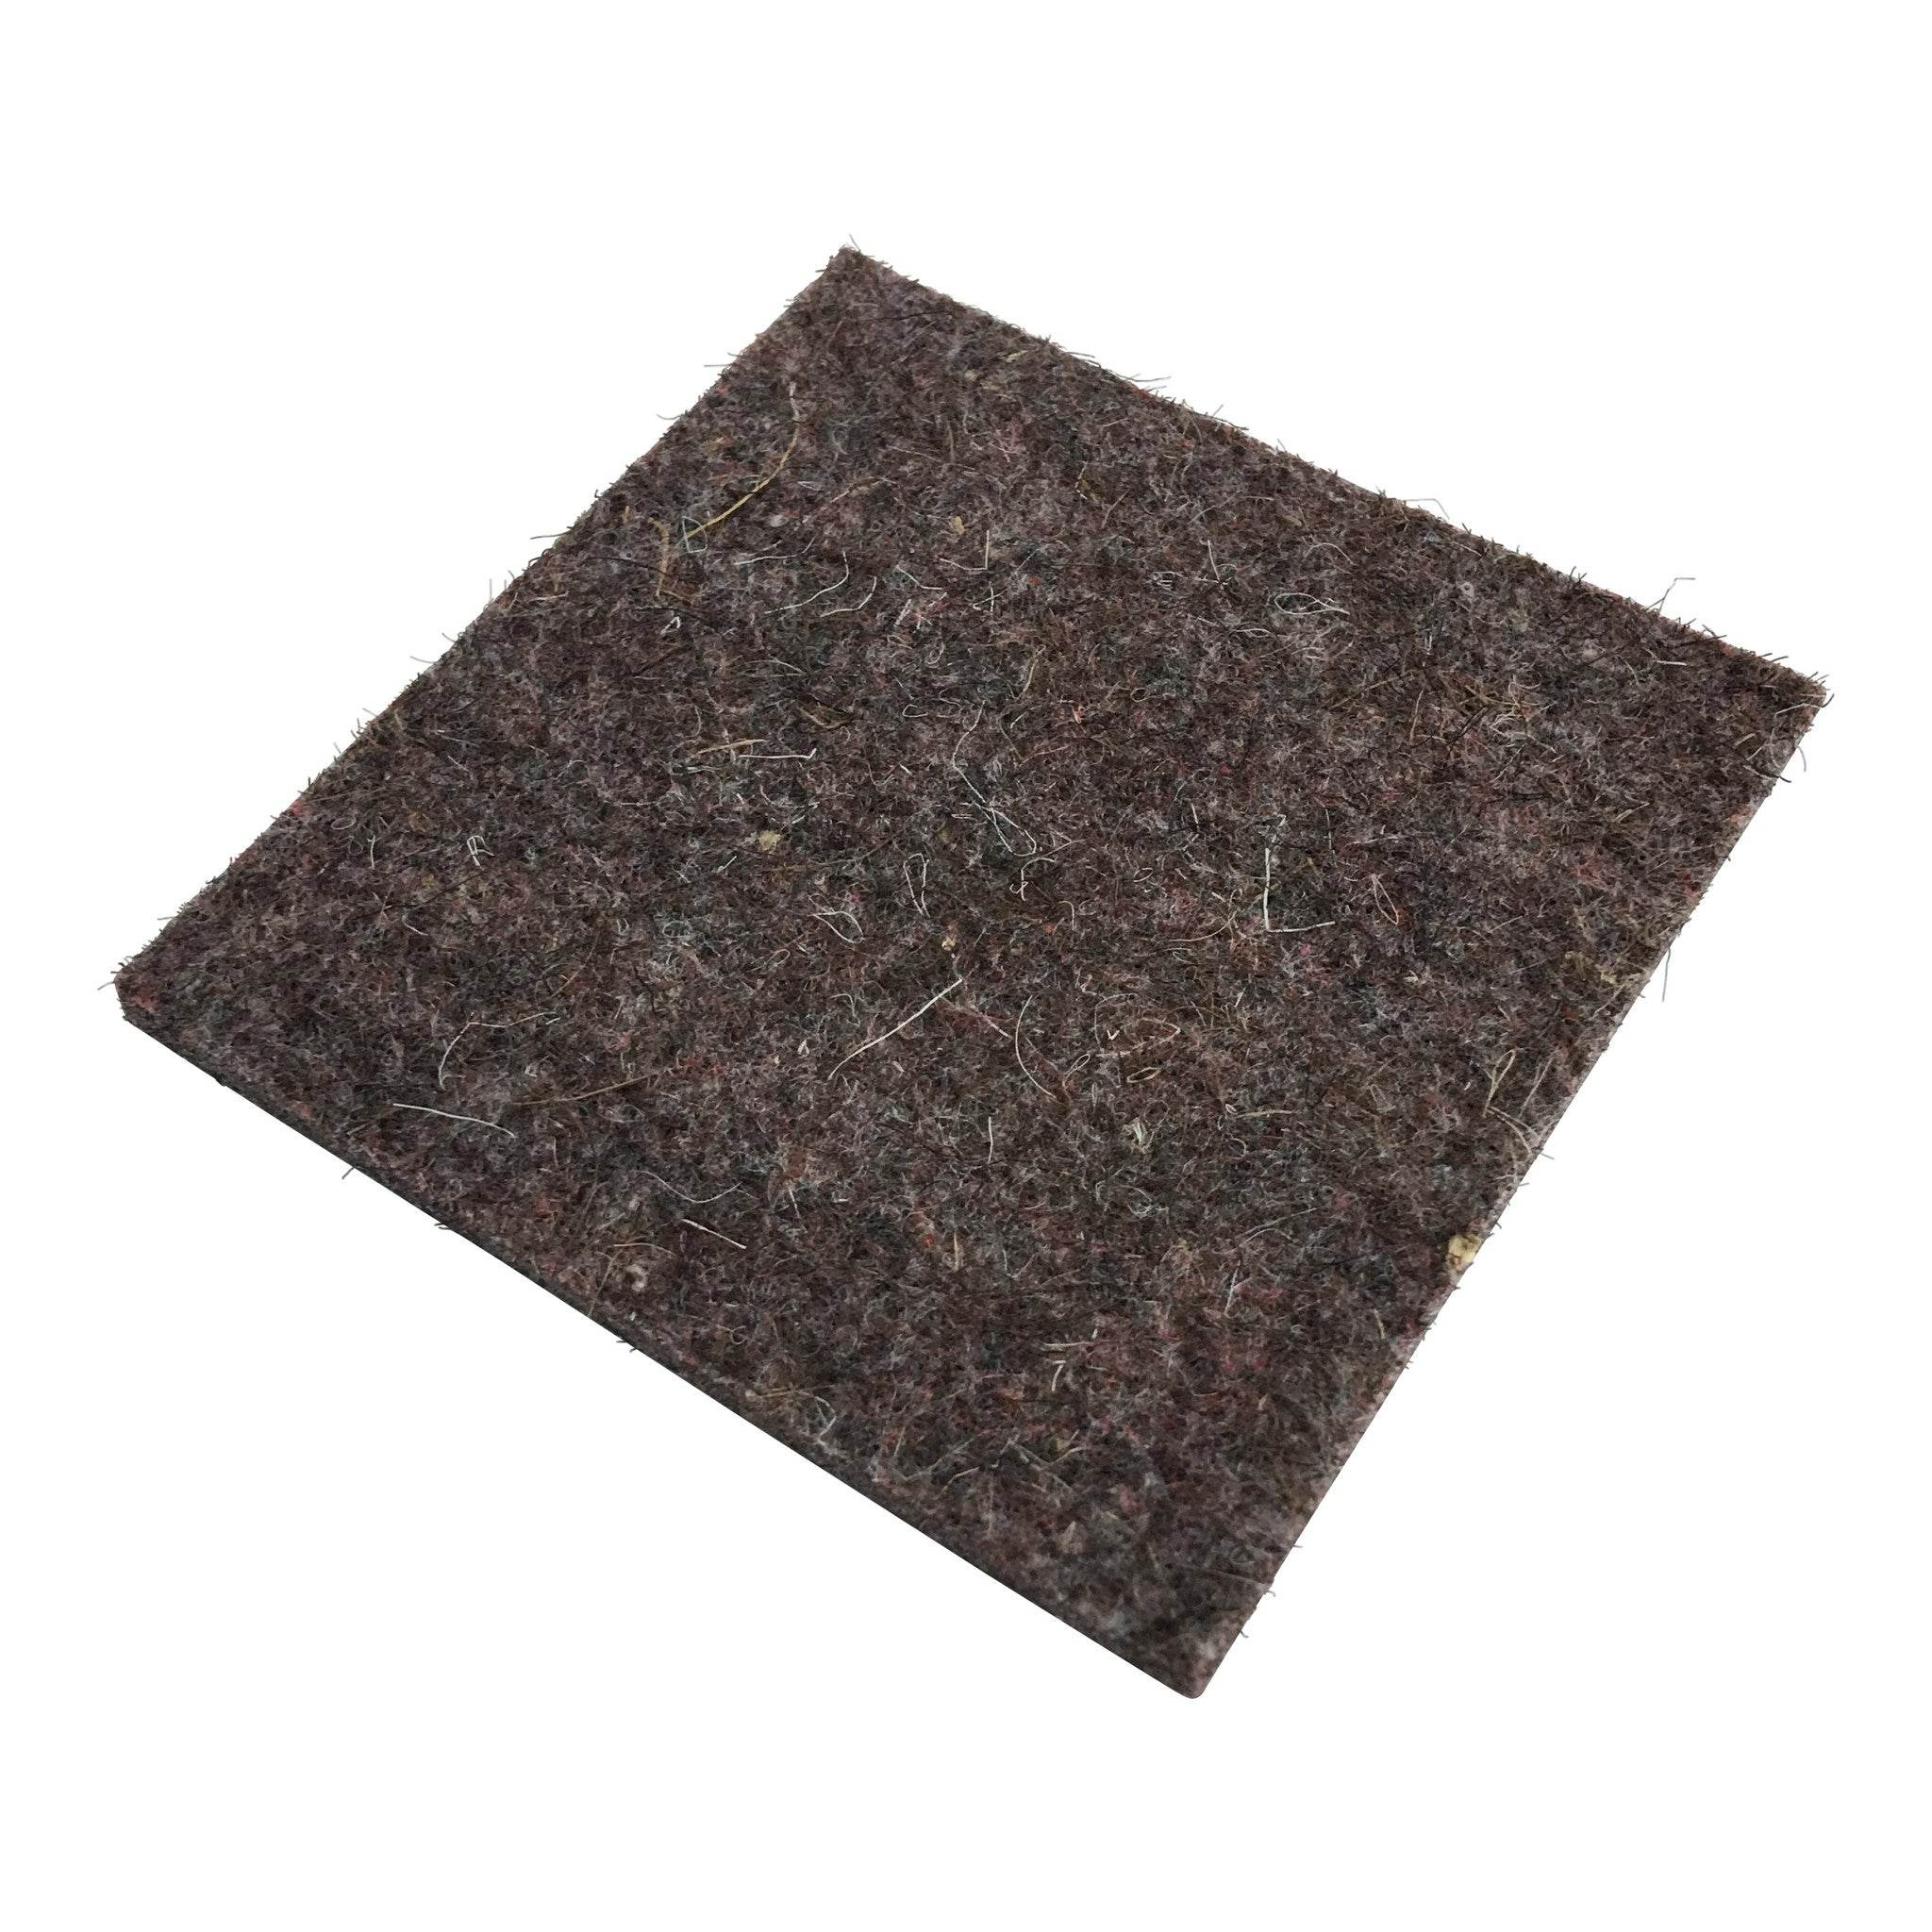 76mm x 76mm New  Industrial Strength Adhesive Felt Pads